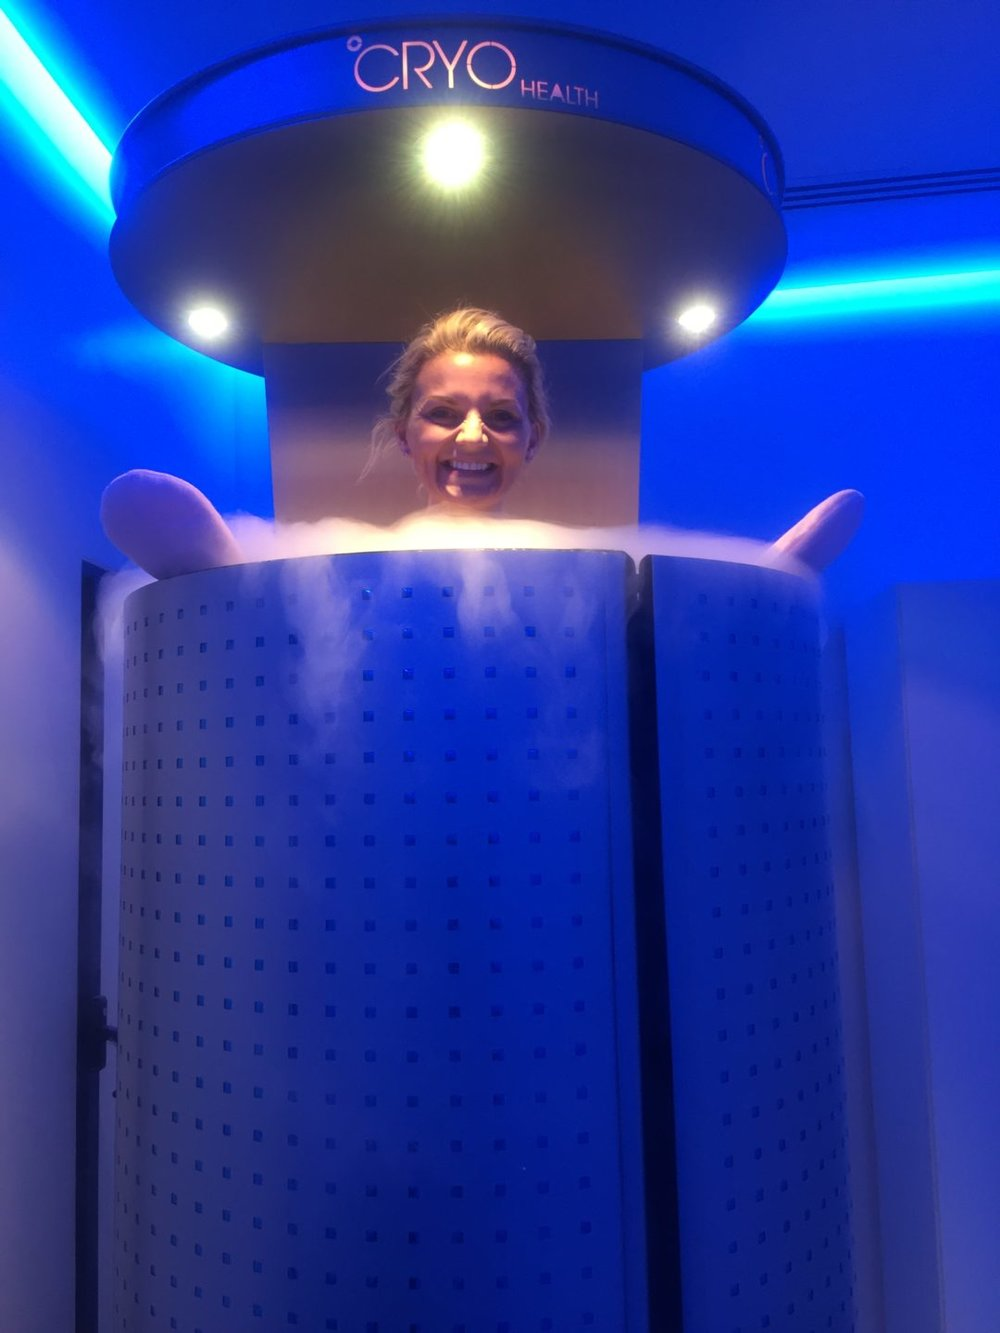 Kitted out in the CRYO chamber